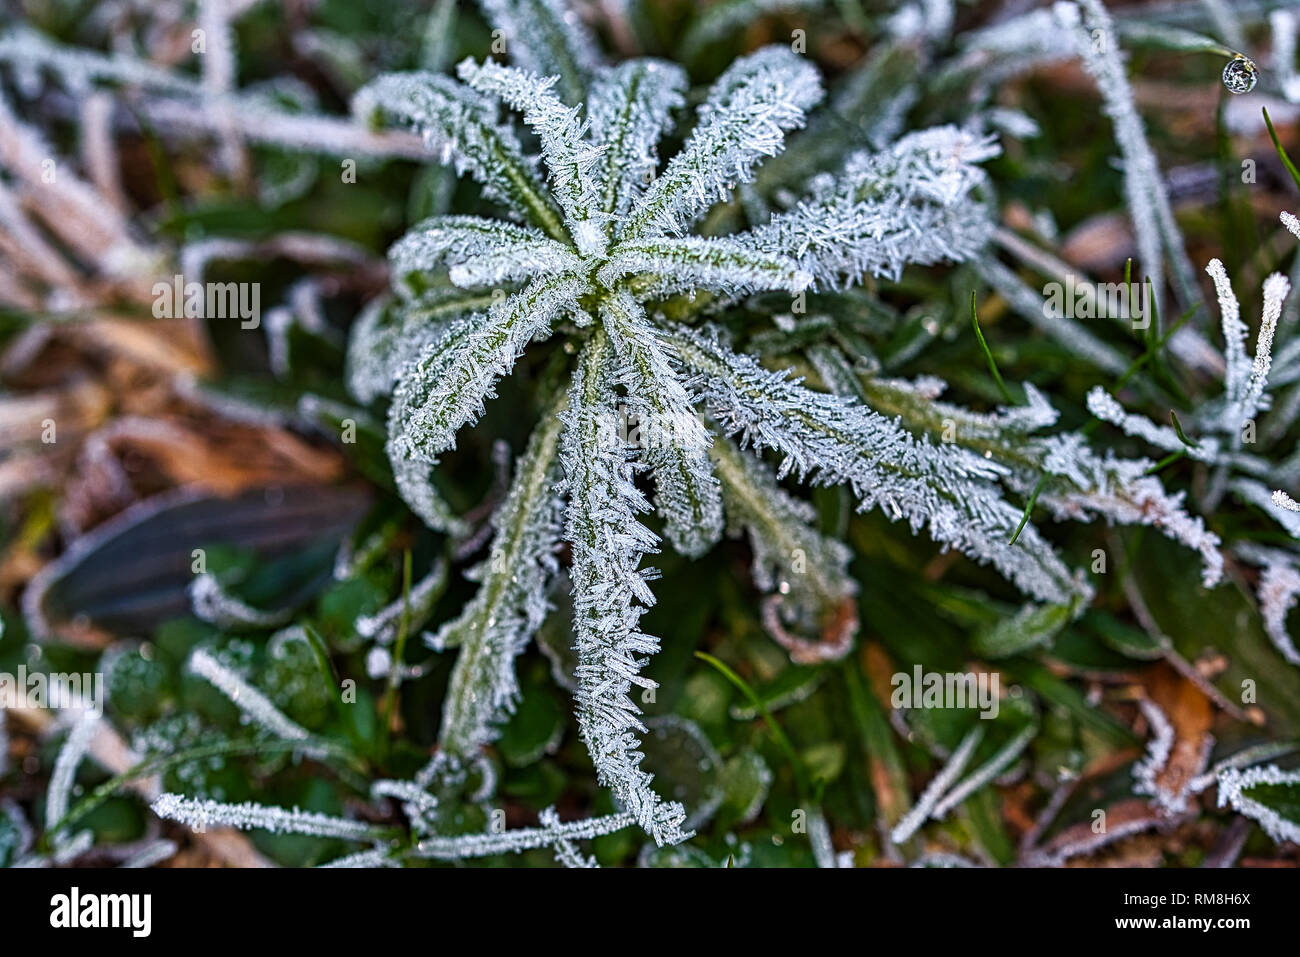 The Frozen Nature Frozen Plants Icy Morning Stock Photo